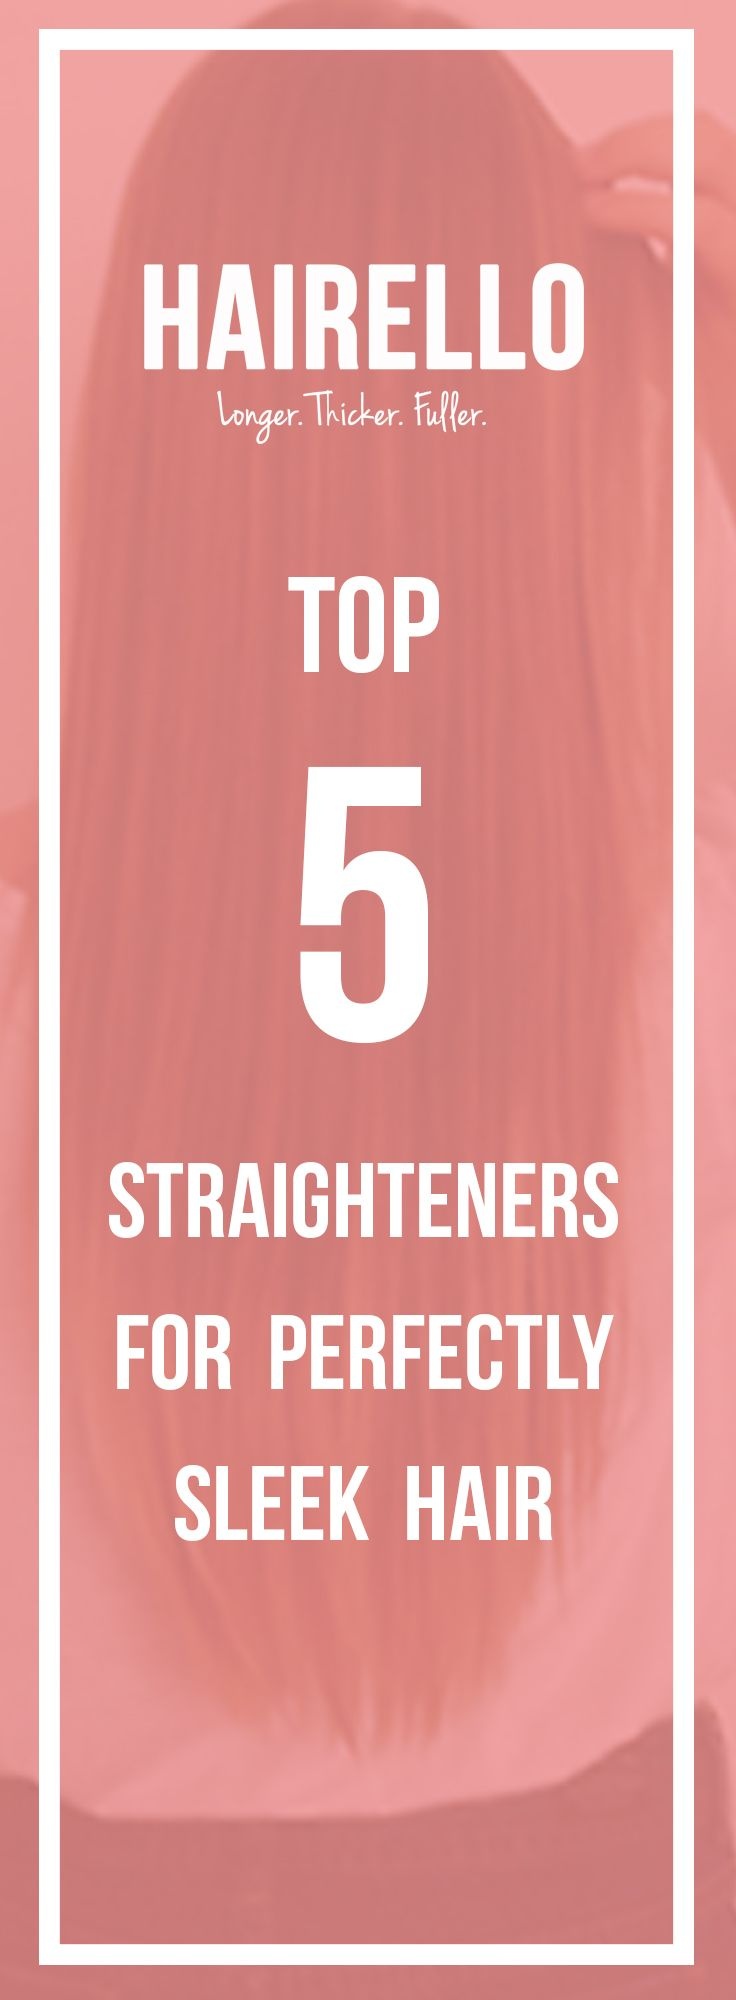 We've rounded up some of the best straighteners to tackle your frizz! Check out our Top 5 Straigteners on the Hairello Blog <3